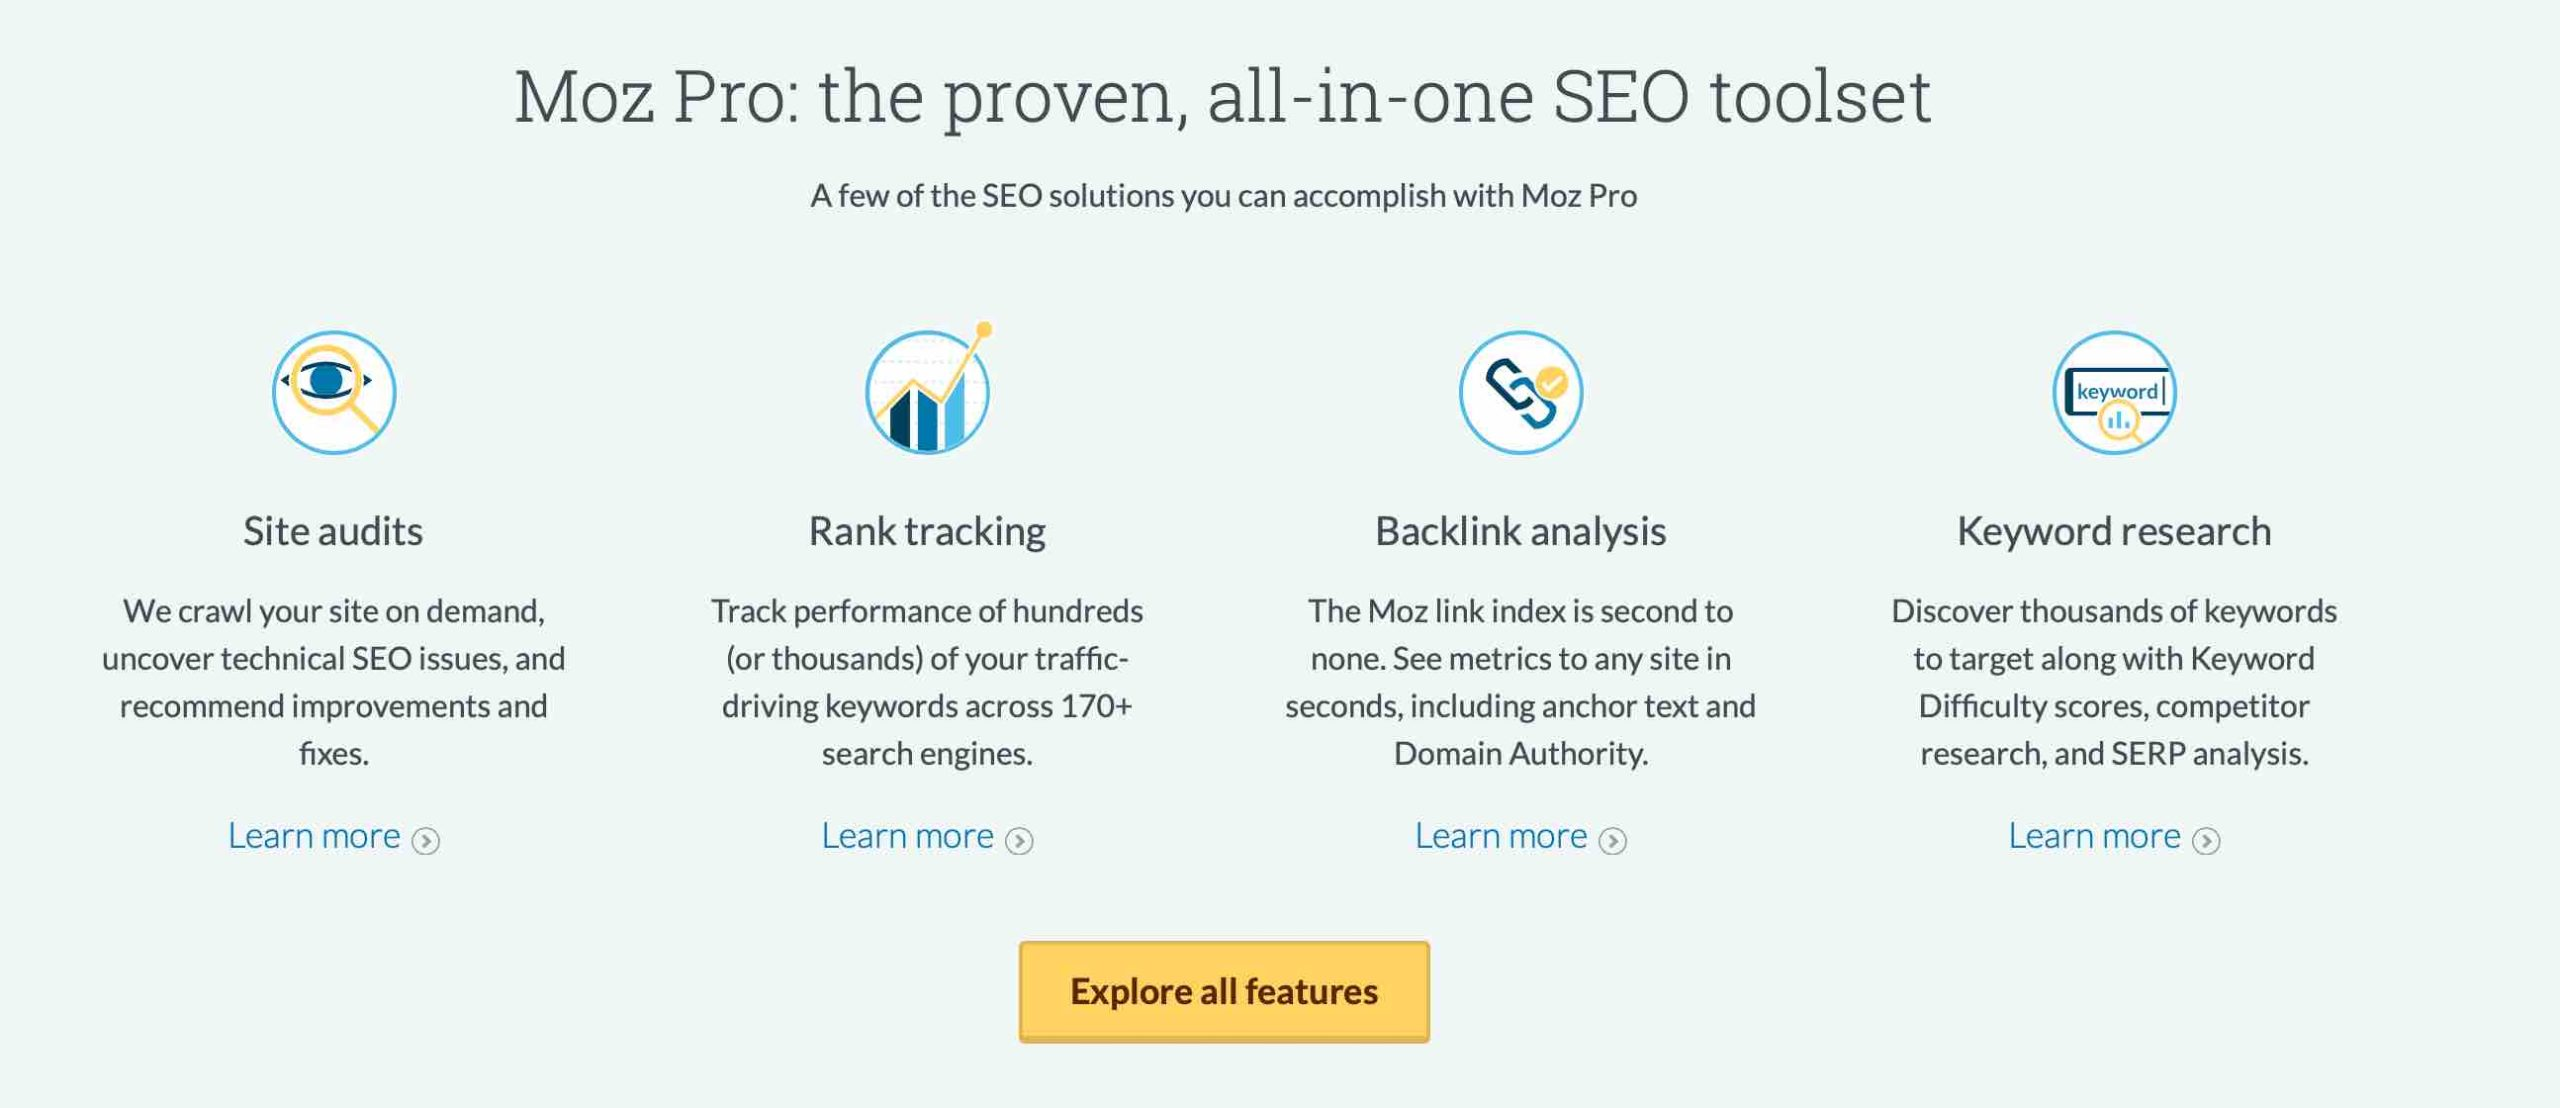 help you increase traffic, rankings, and visibility in search results